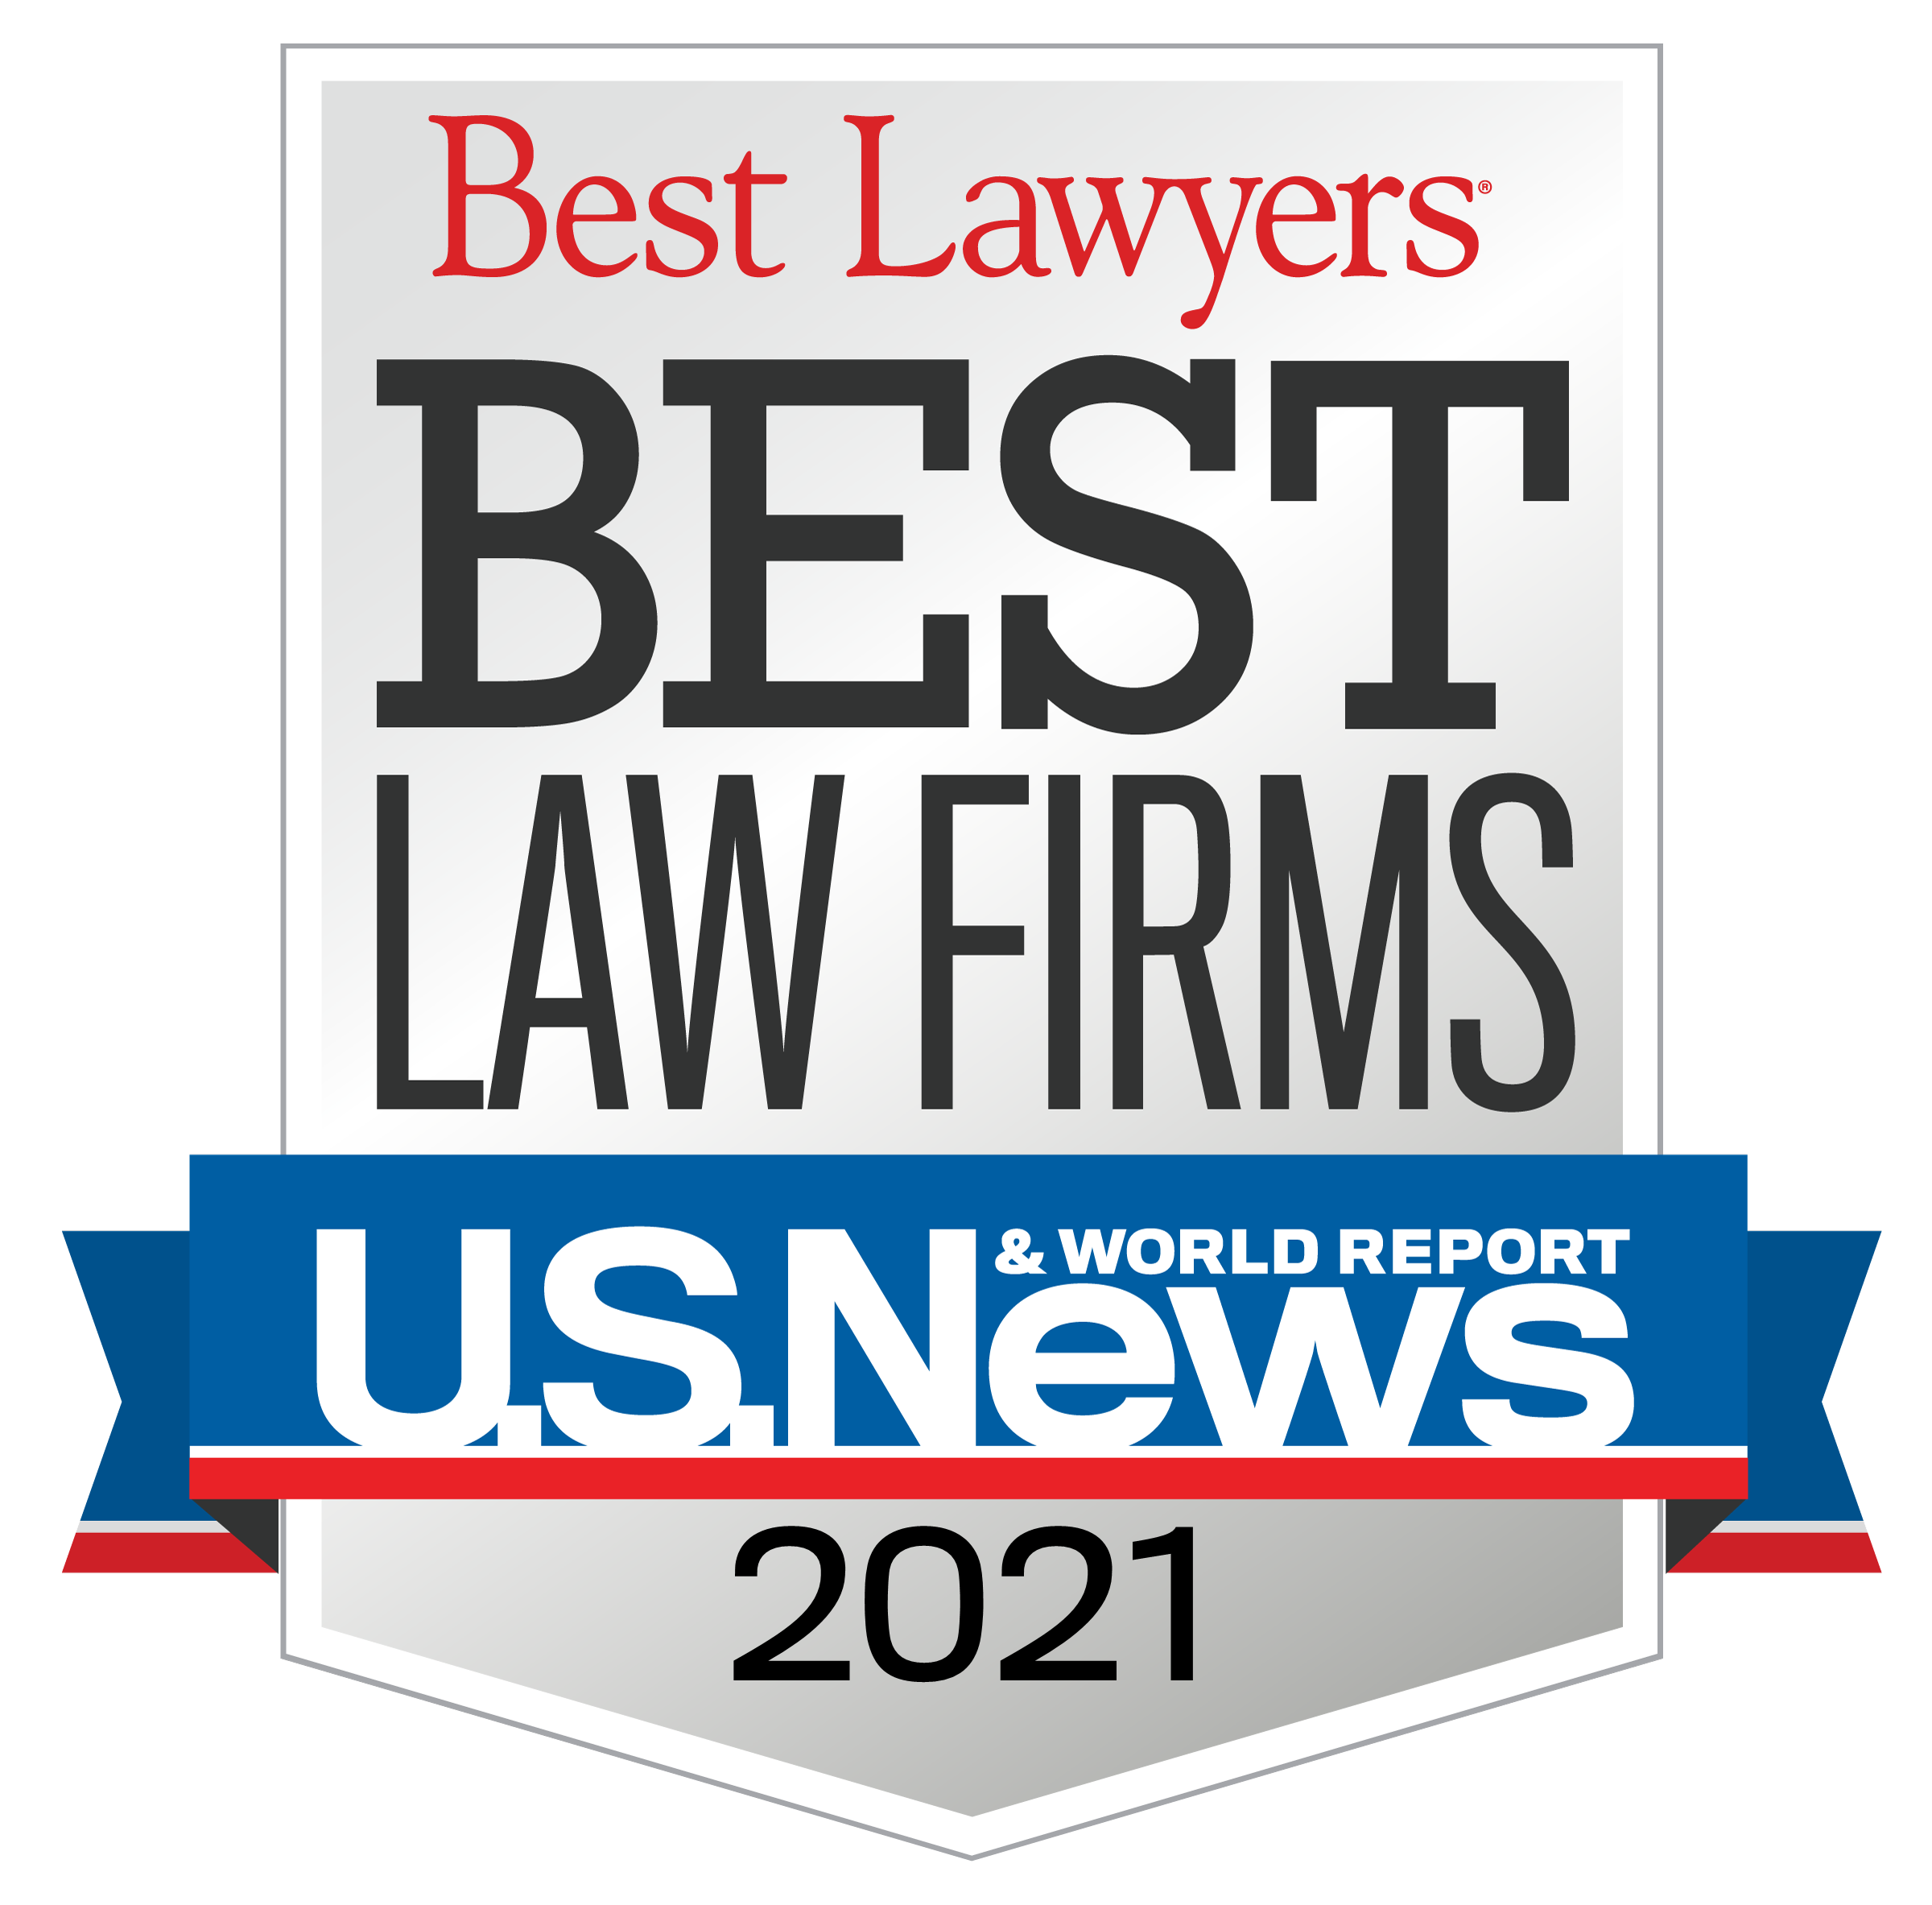 2021-best-law-firms-standard-badge